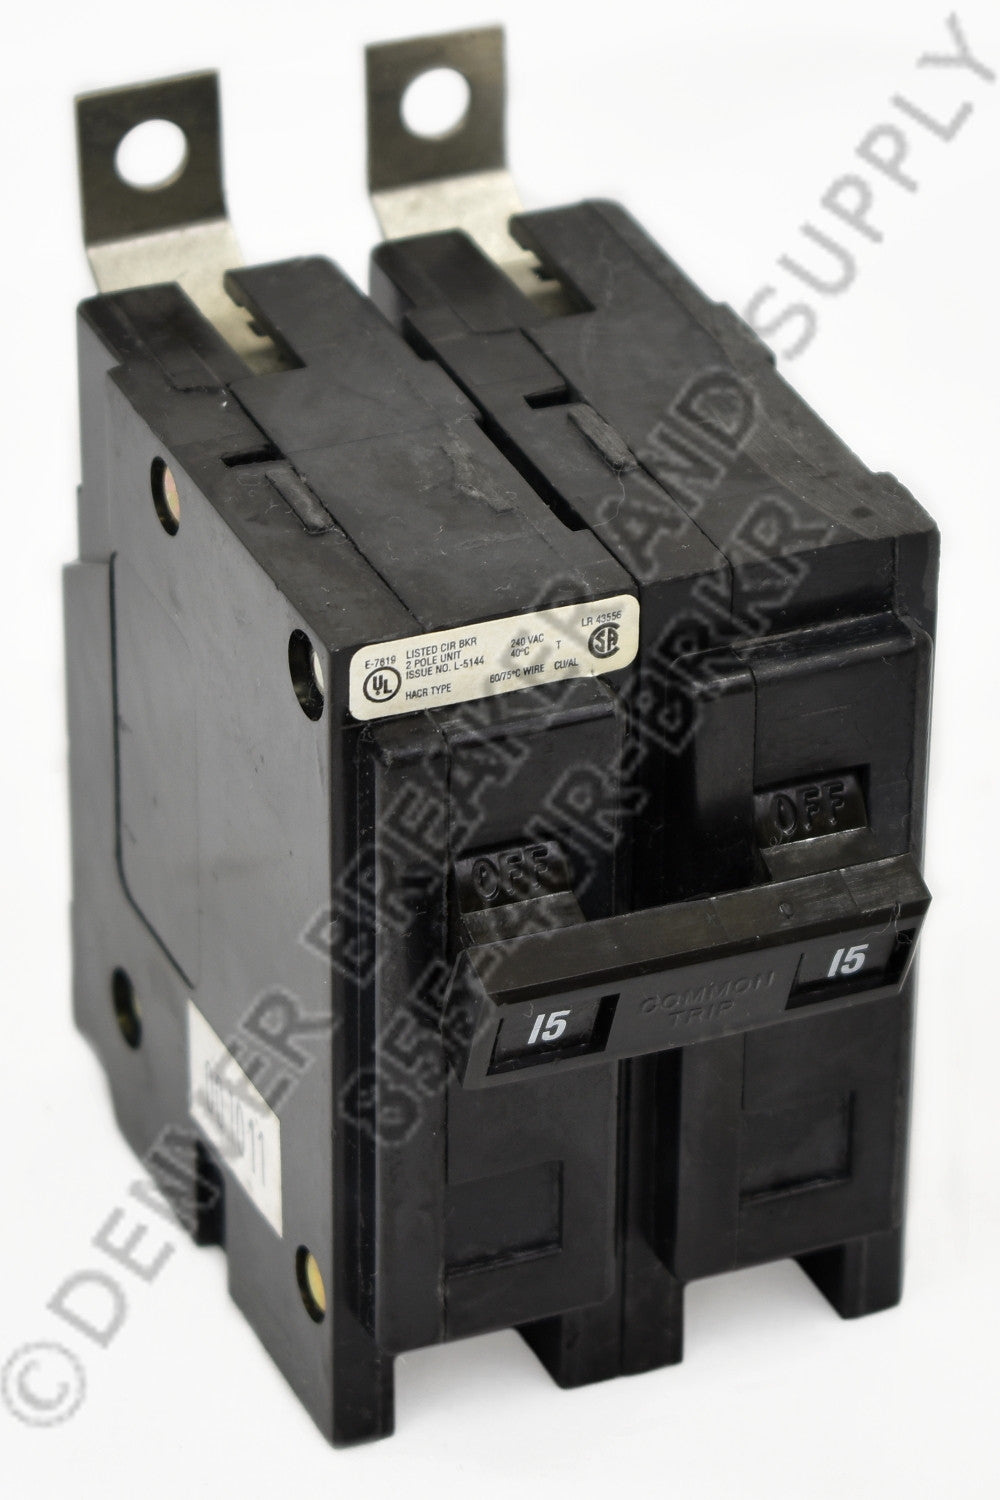 Cutler Hammer BAB2100S Circuit Breakers